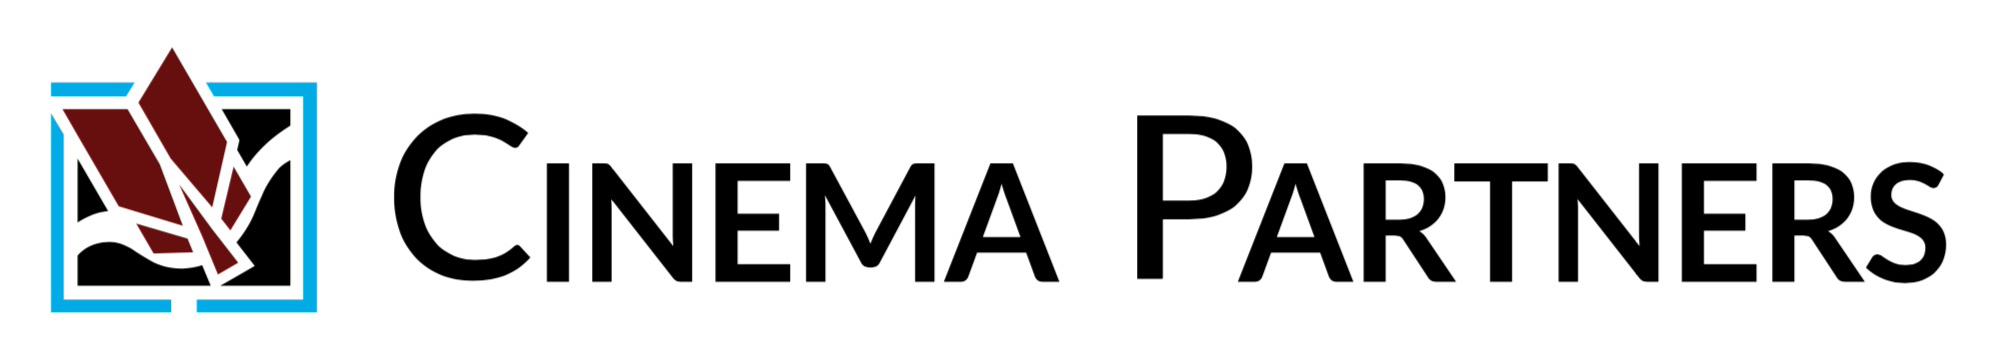 Cinema-Partners-Logo-Color